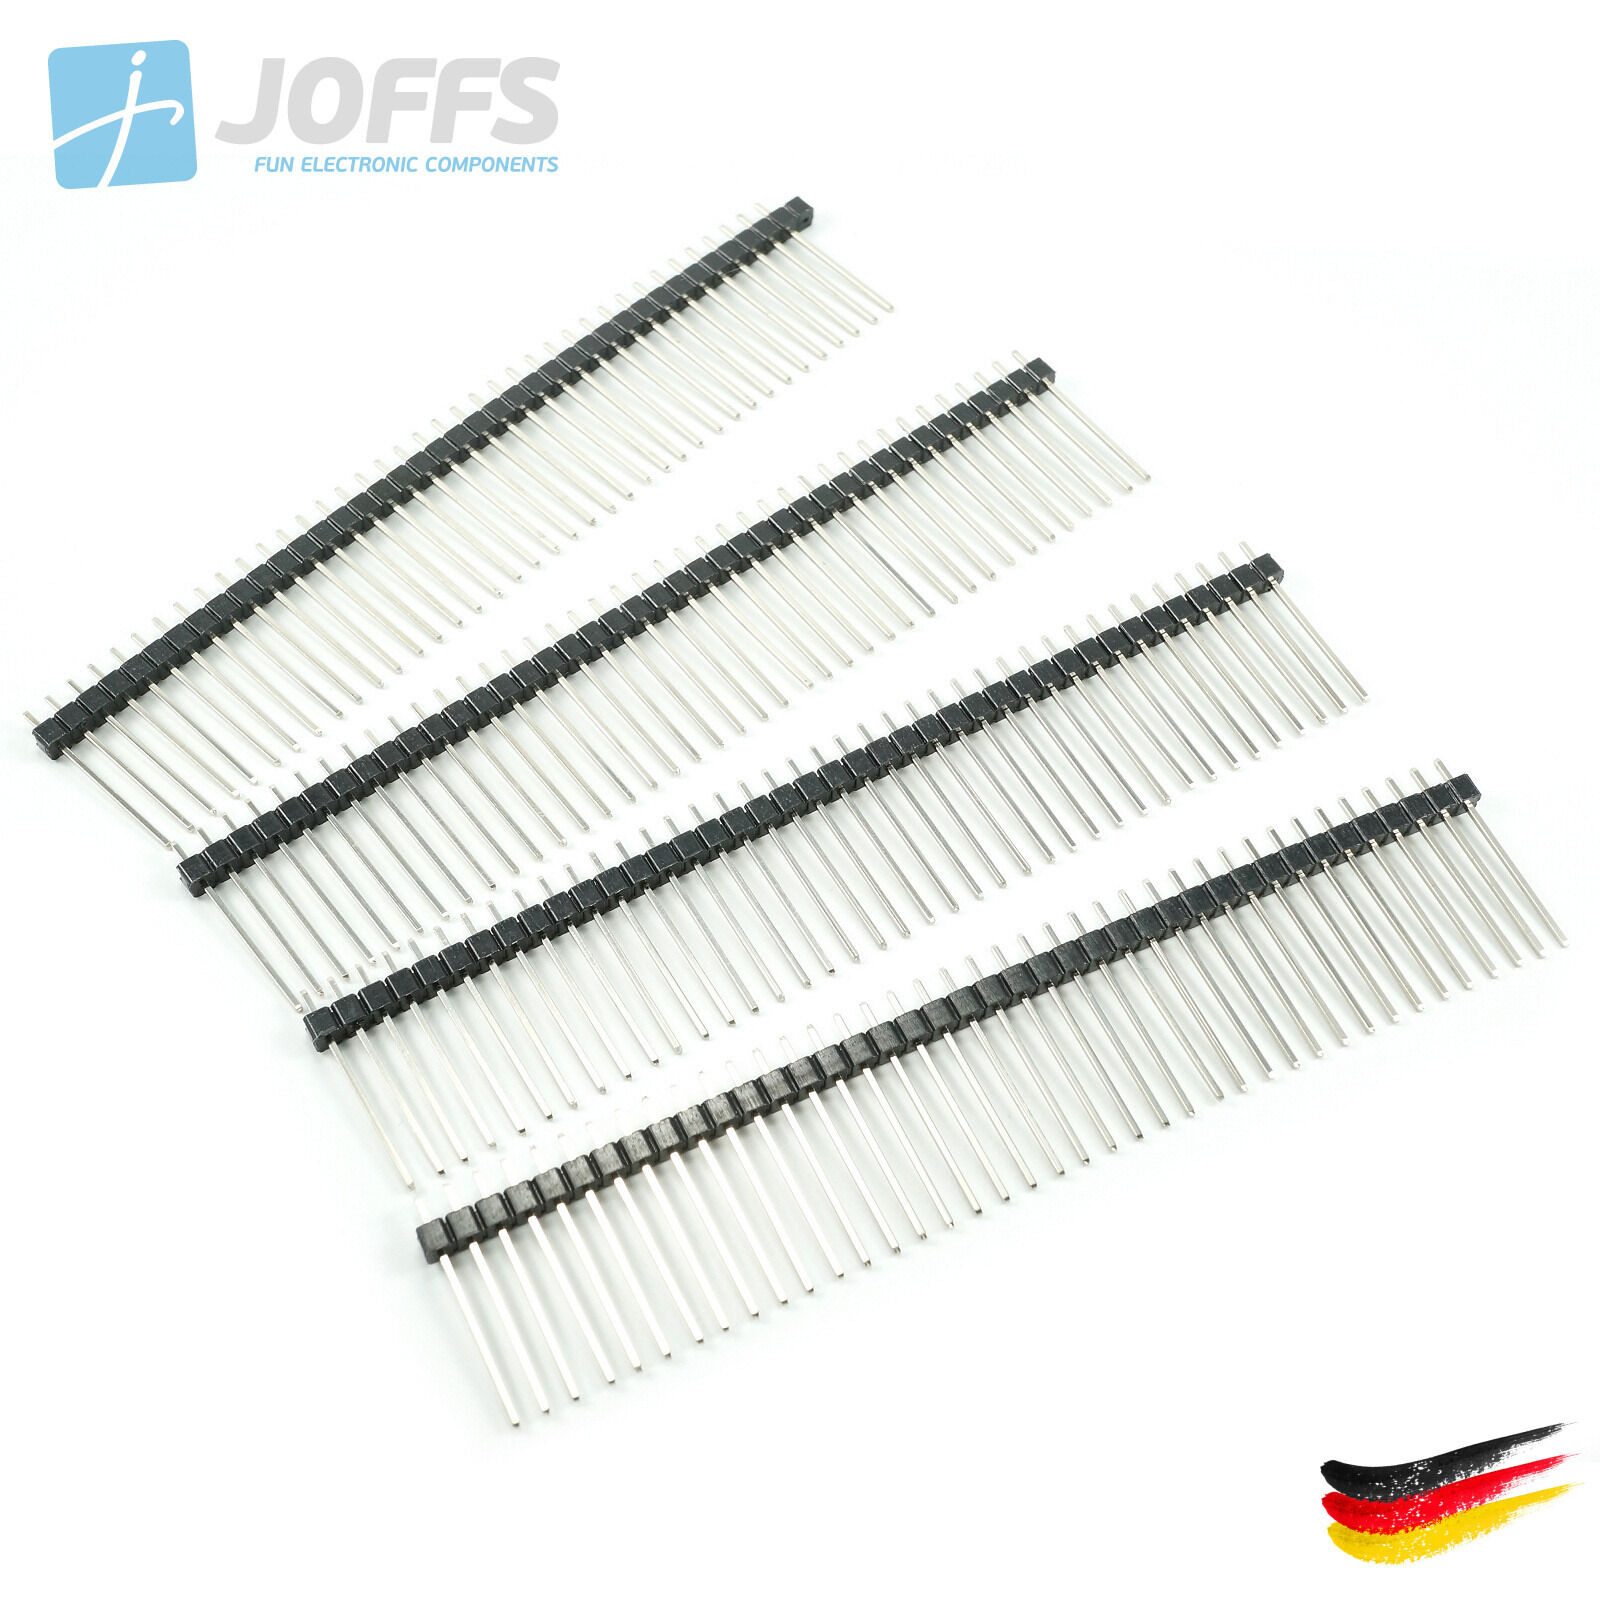 10 X 40 Pin Stiftleiste 21mm Einreihig 2 54mm Single Row